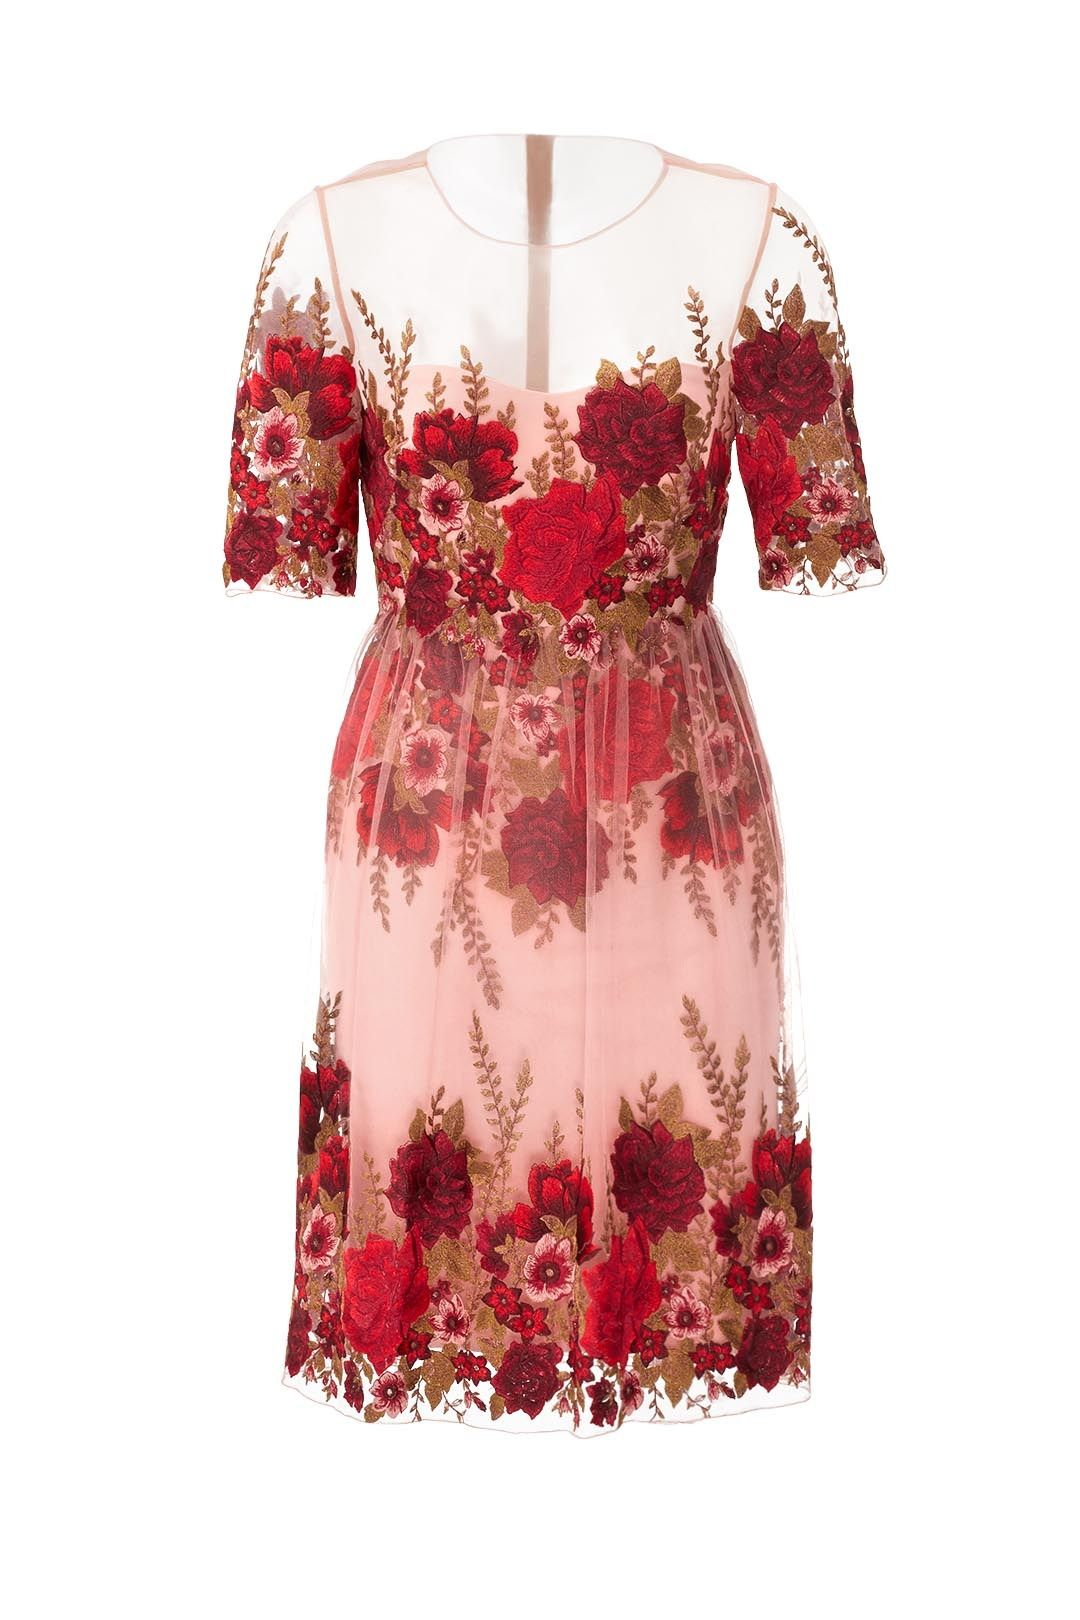 Rose Throw Dress | Marchesa, Rose and Mob dresses